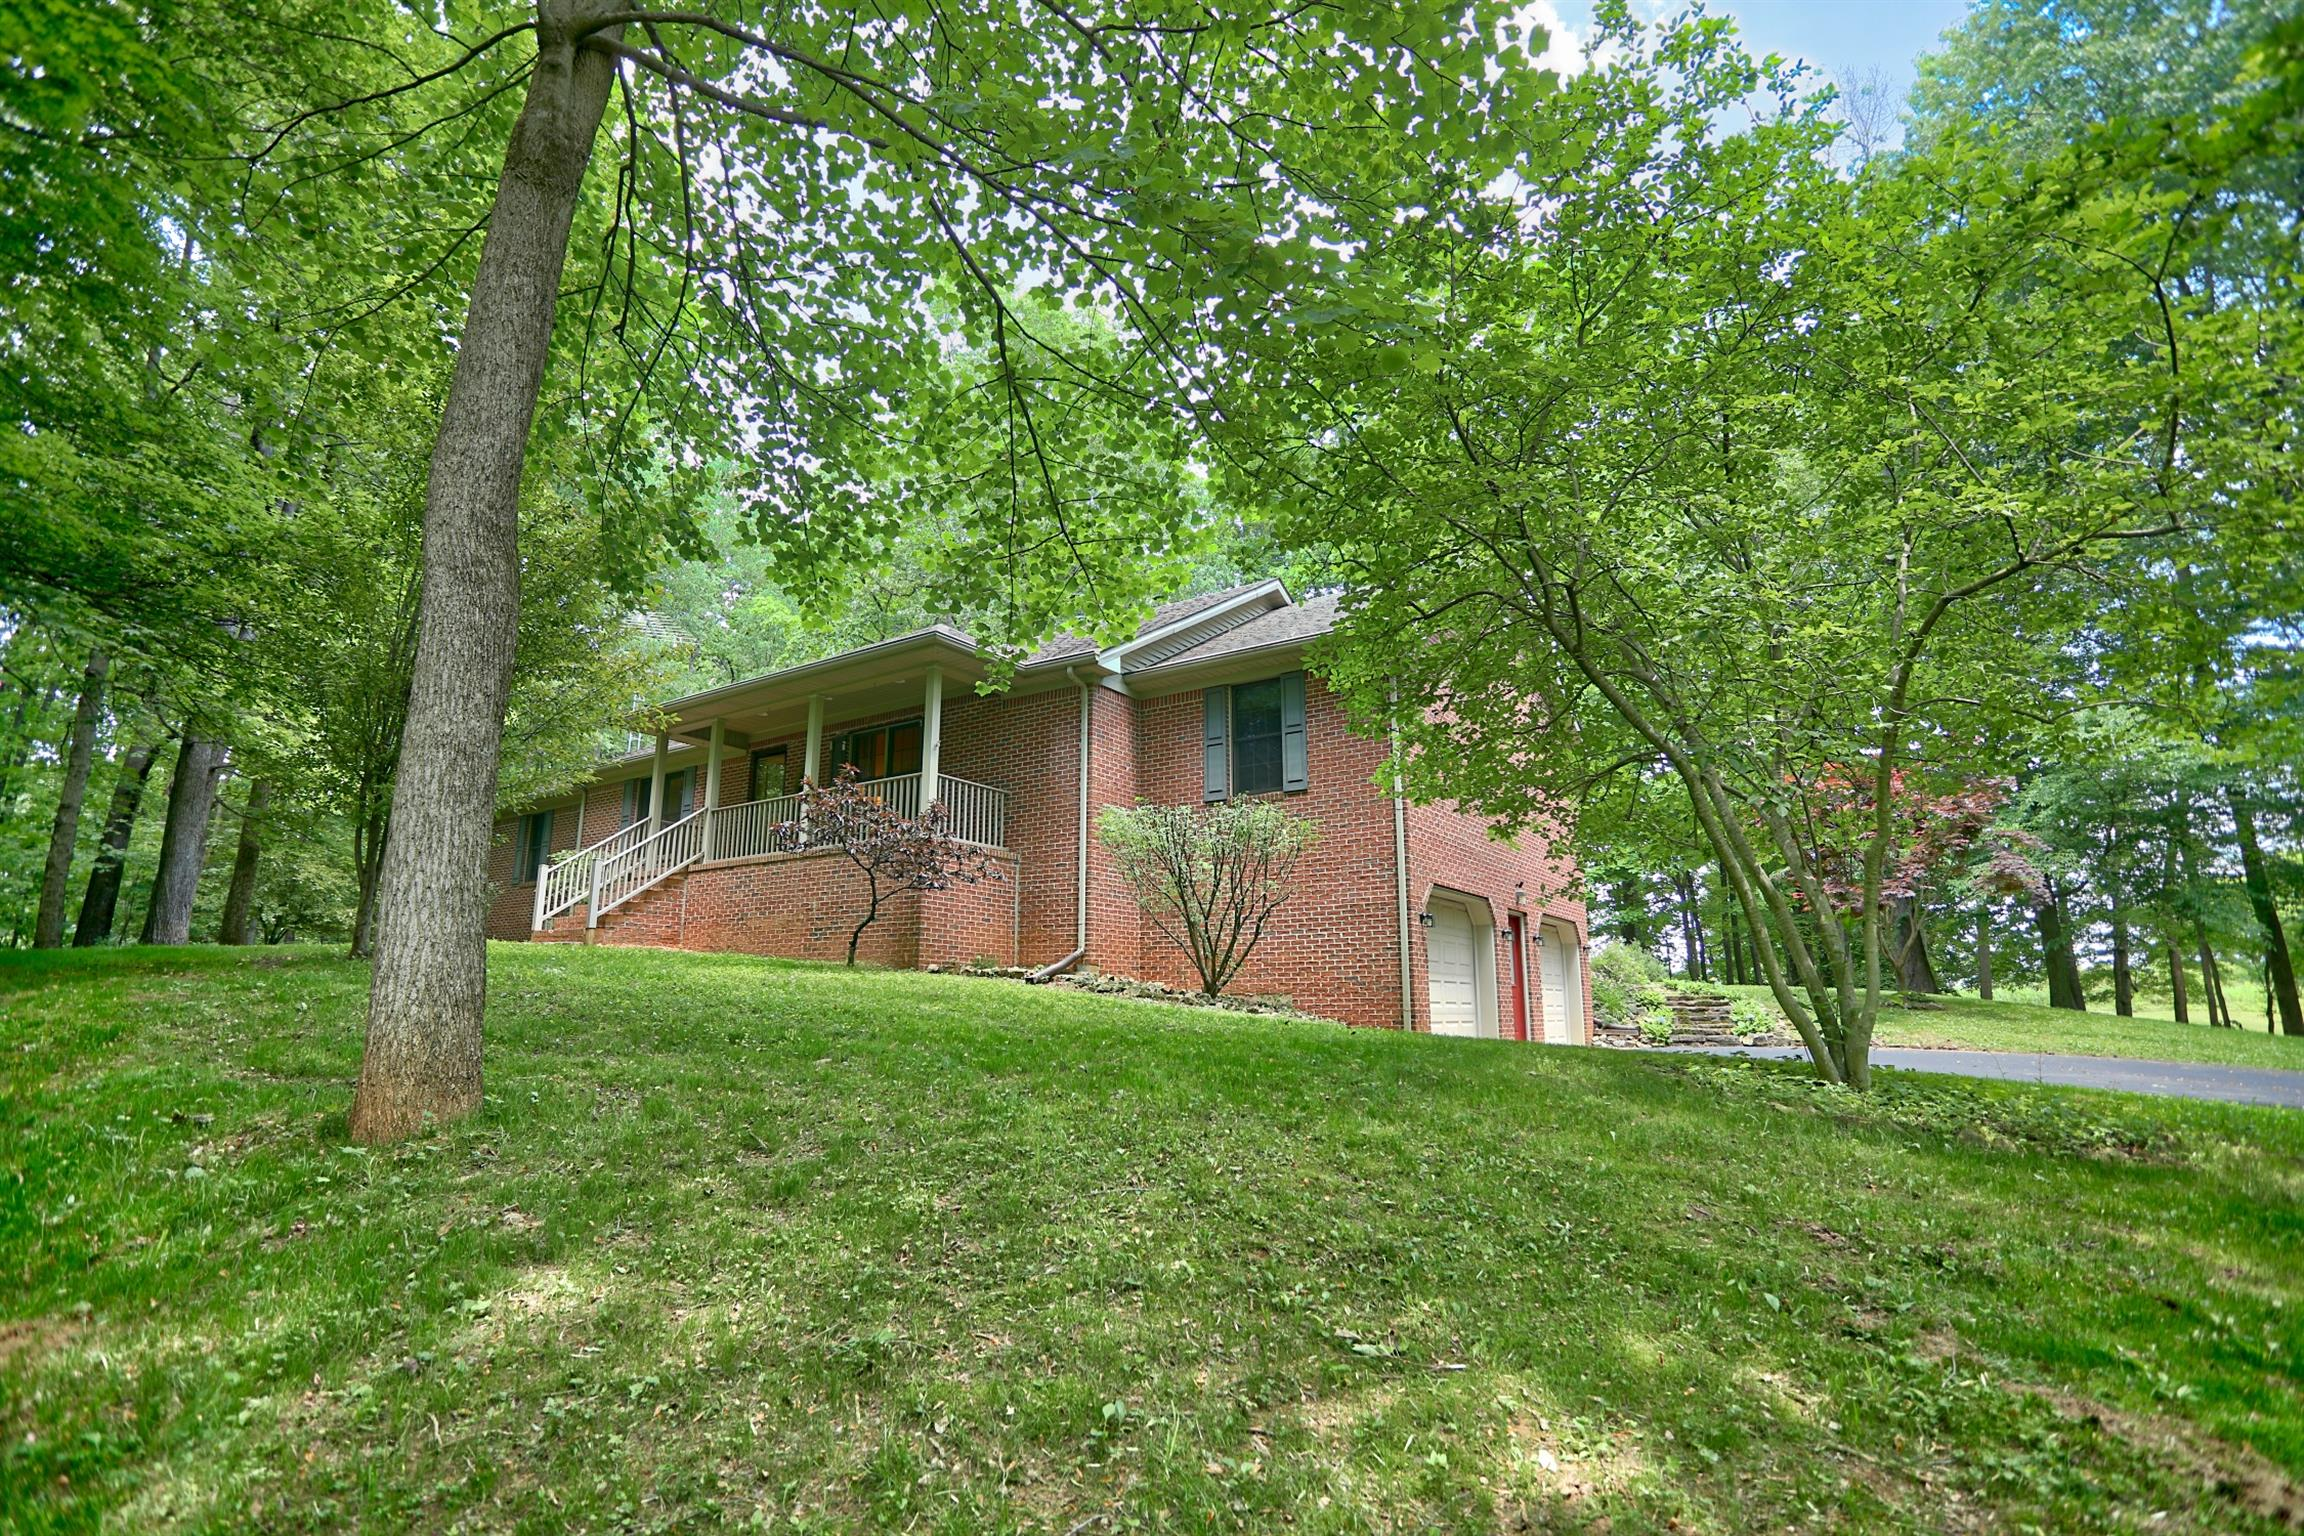 201 Hiley Spencer Rd, Scottsville, KY 42164 - Scottsville, KY real estate listing